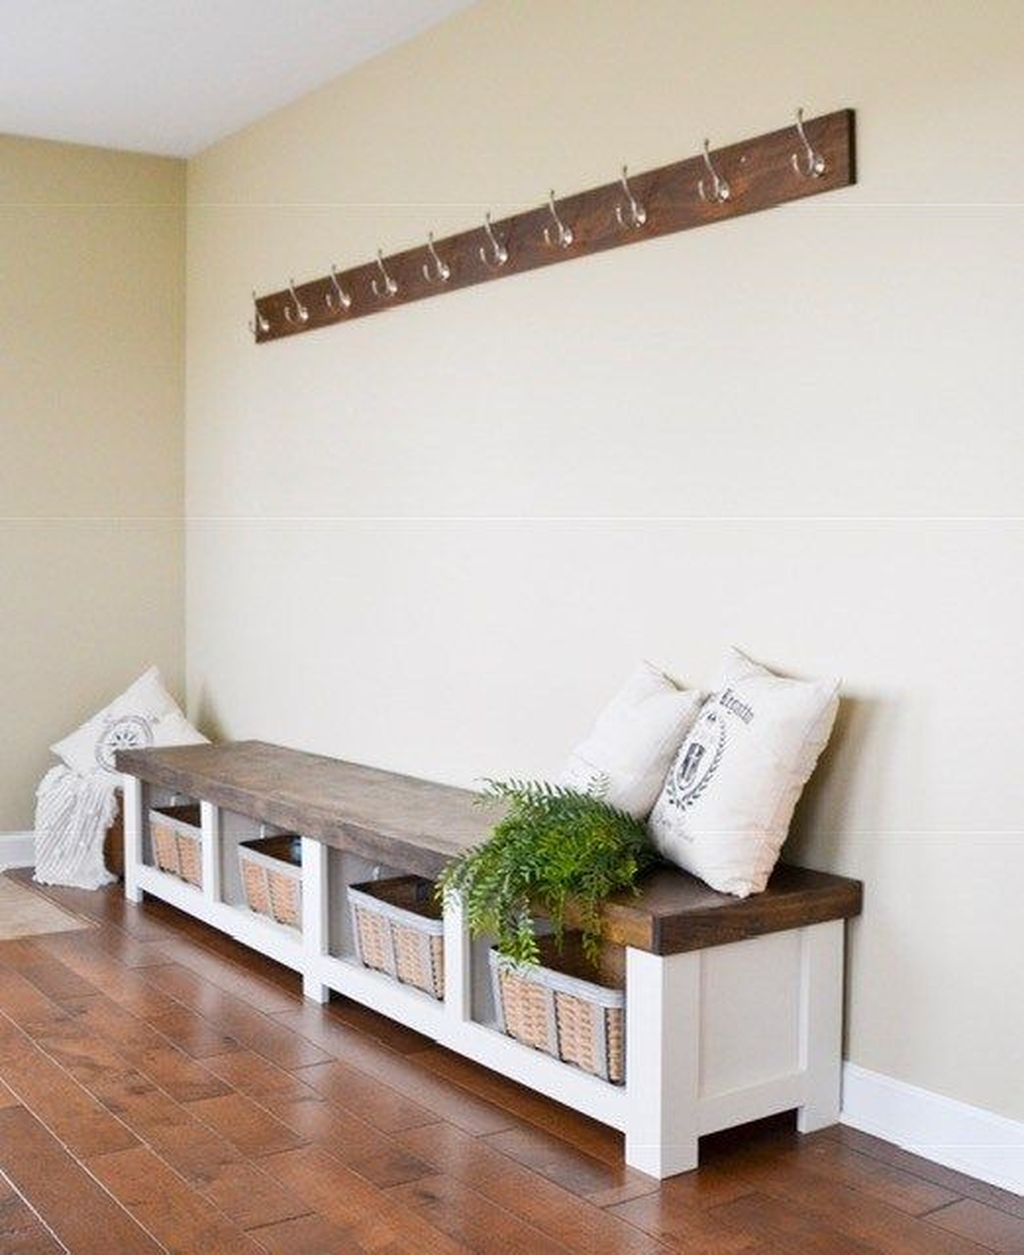 47 Marvelous Living Room Bench Storage Ideas That Make Home More